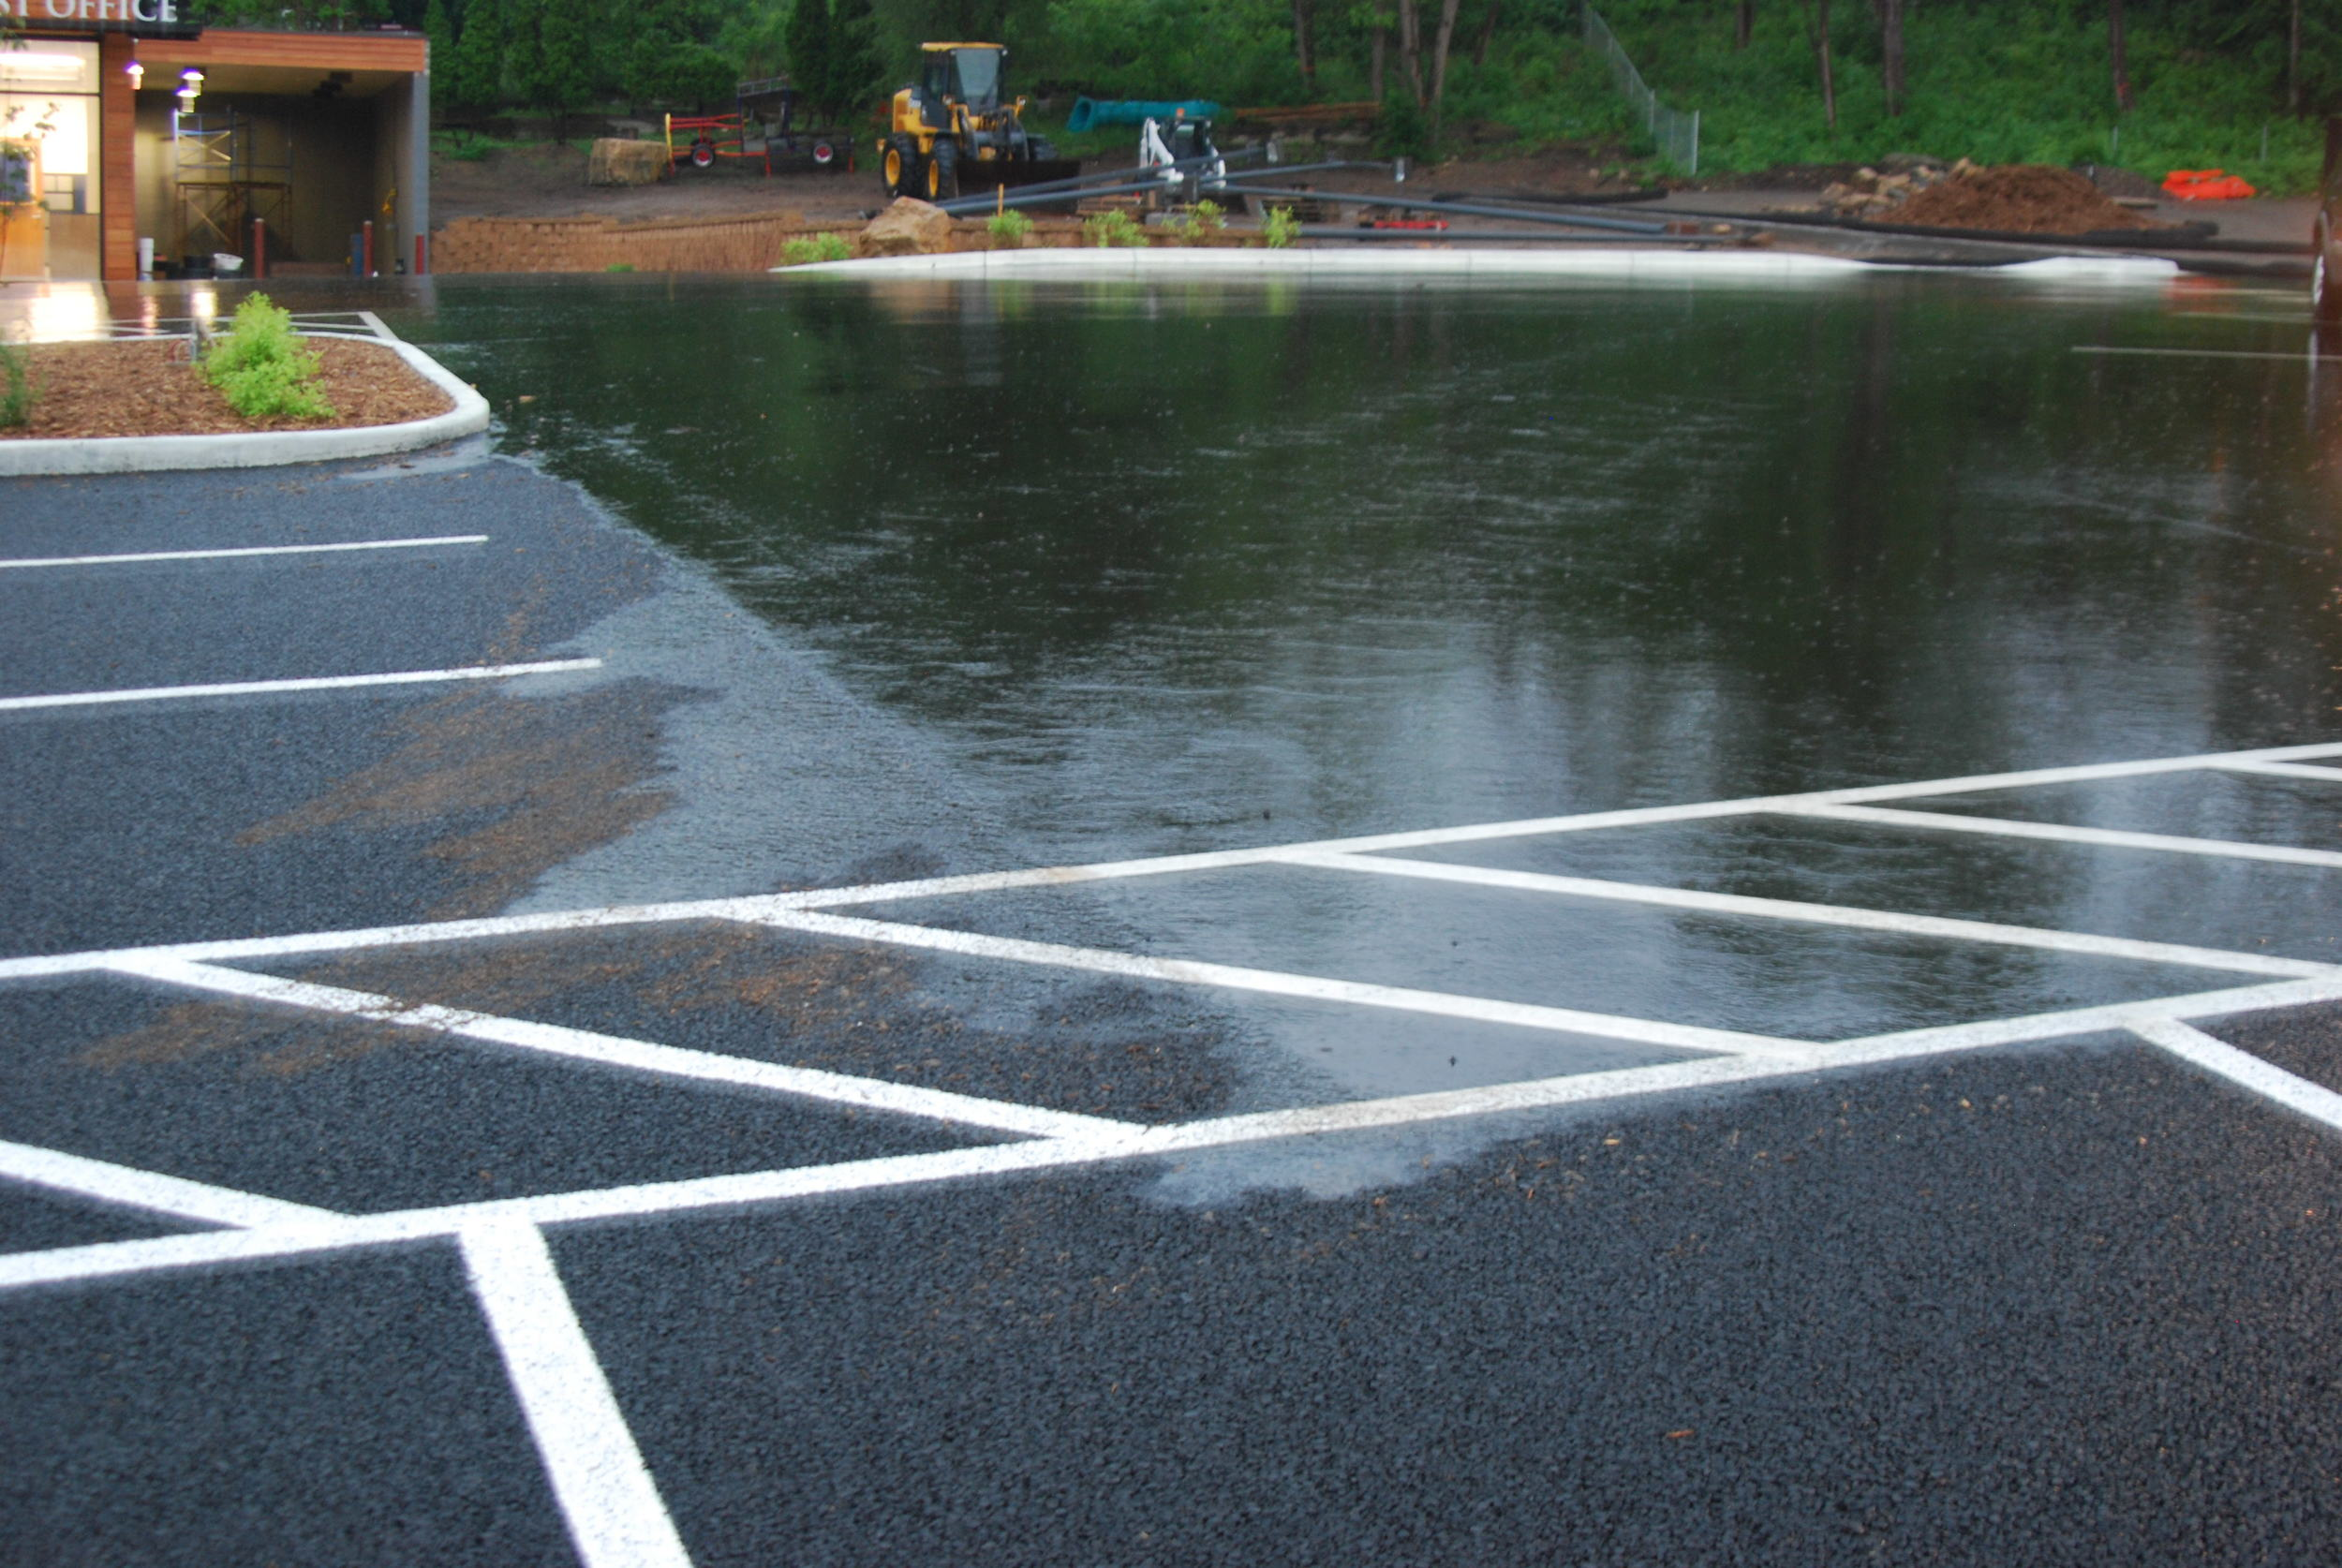 Porous Pavement in action during a rain at Trinity Lutheran in Stillwater, MN.